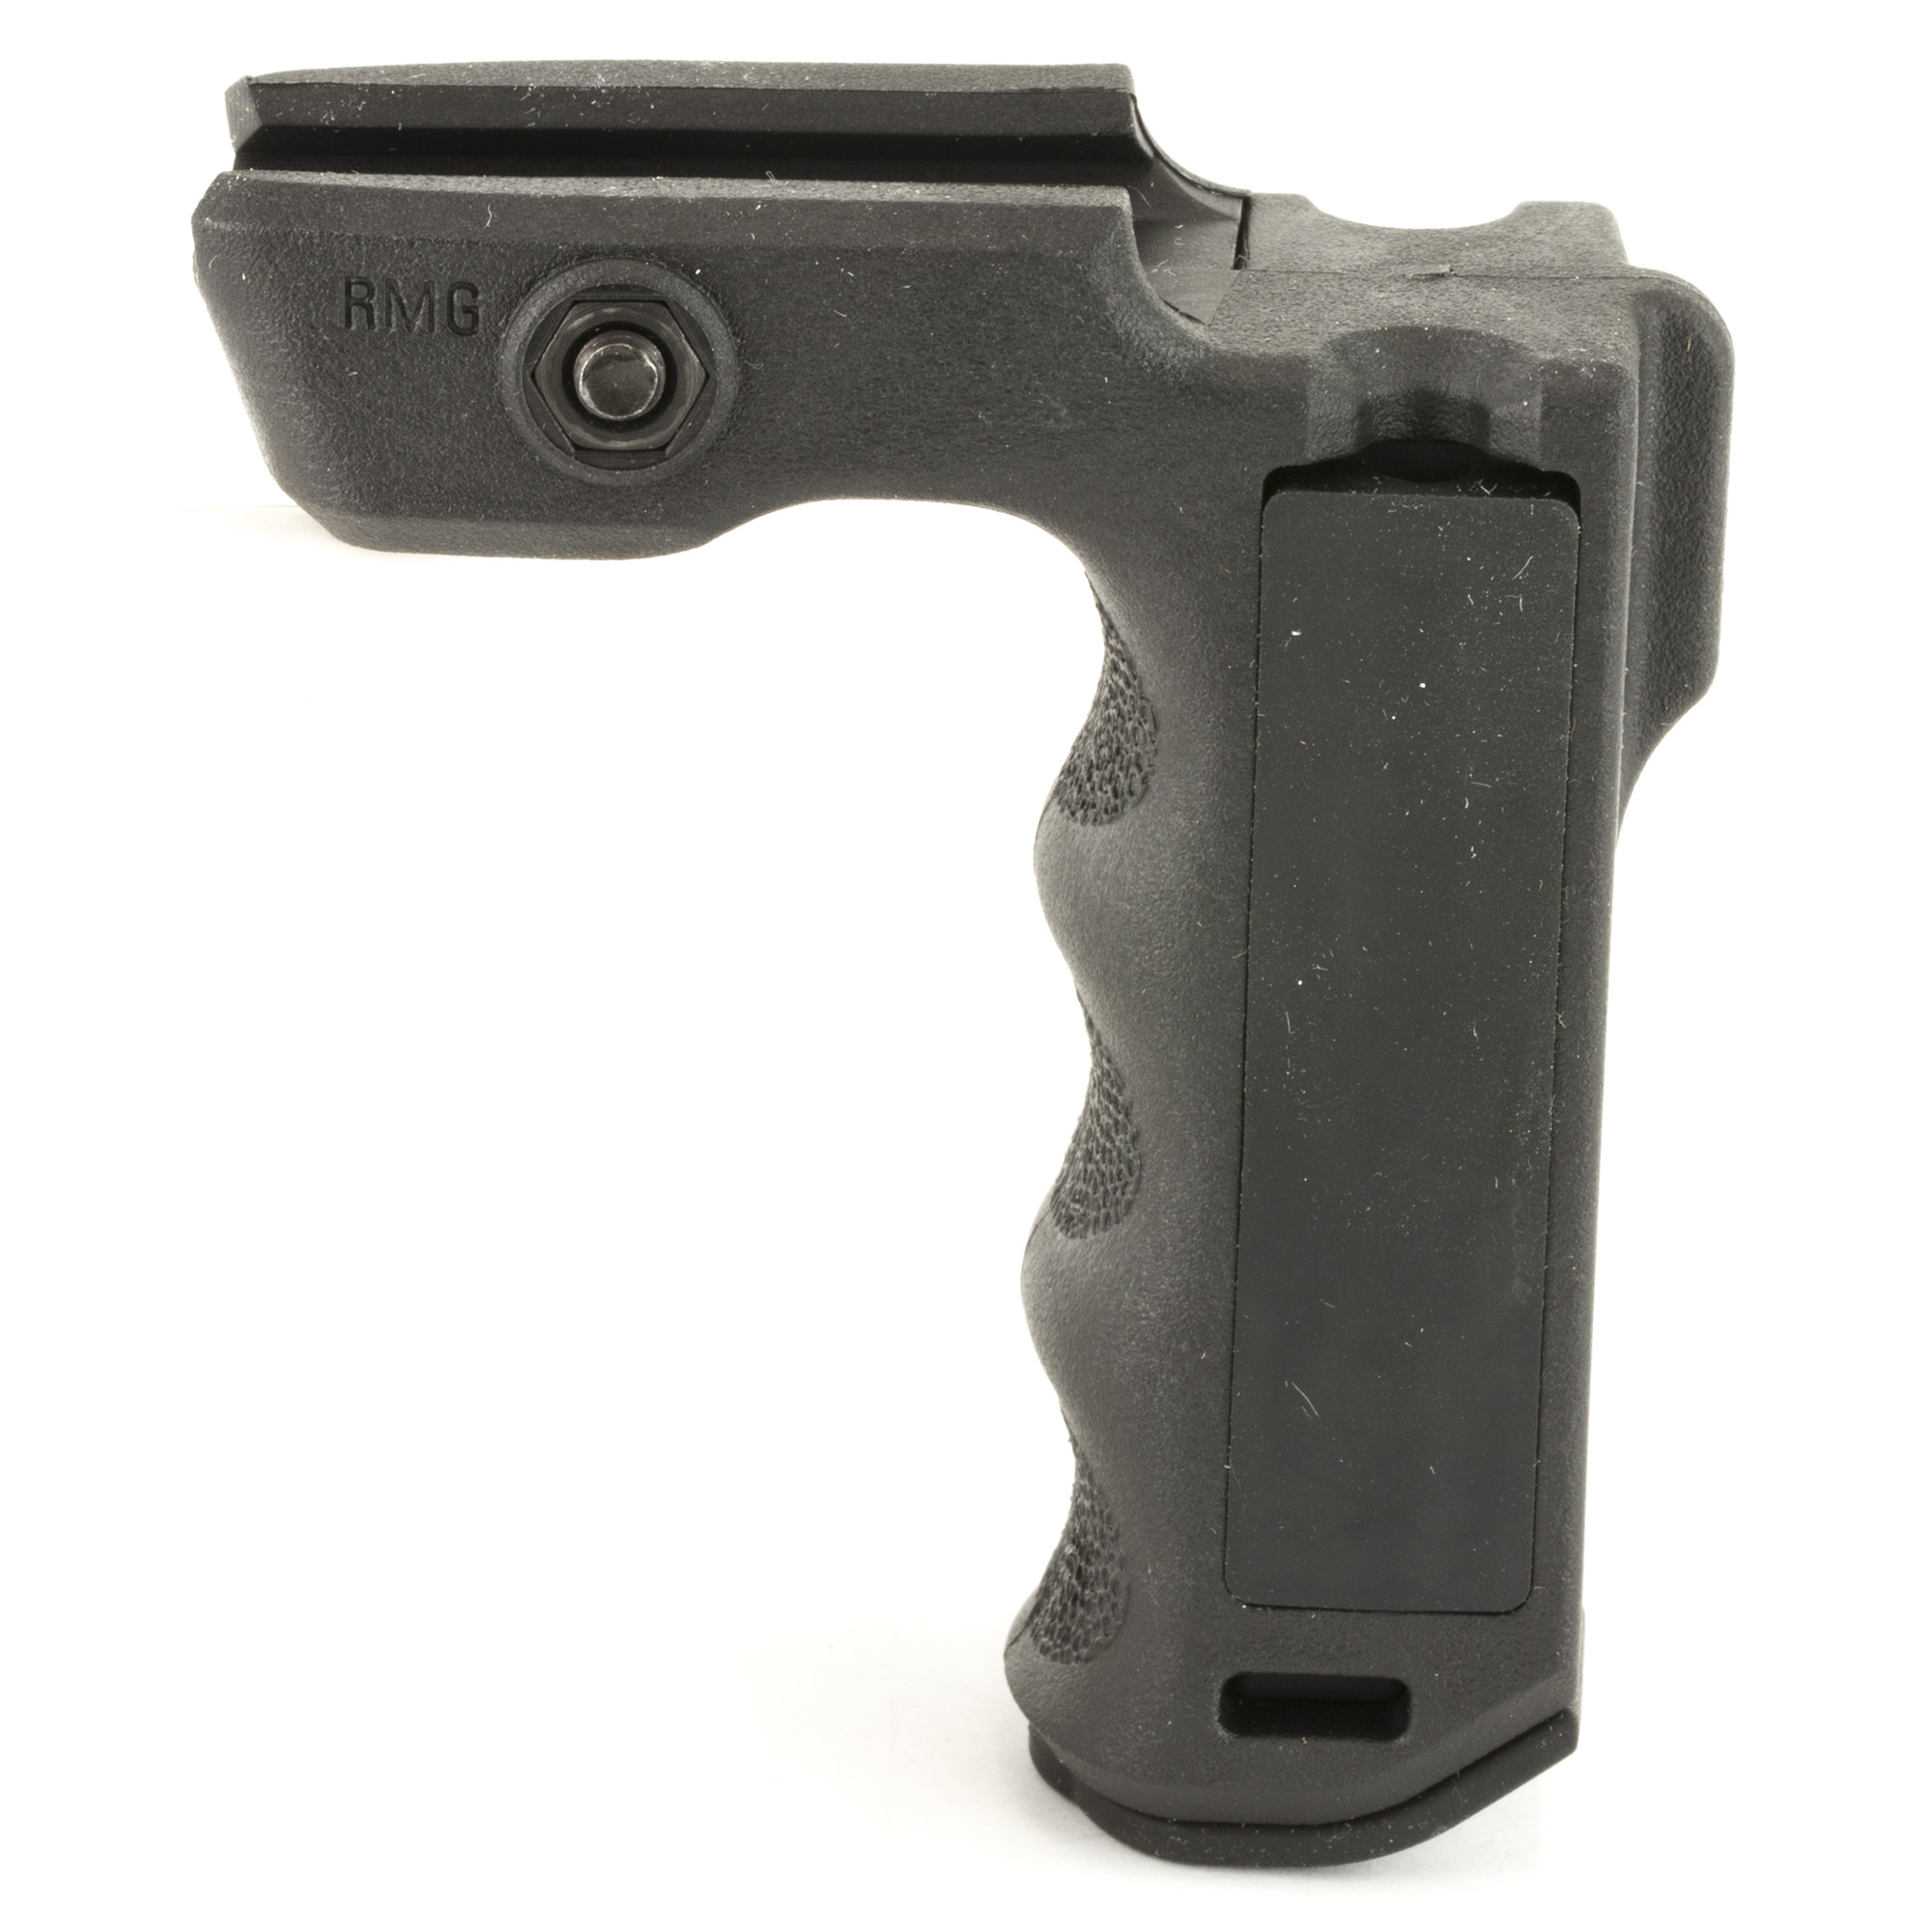 """The React Magwell Grip is a compact textured vertical grip designed for close handhold application at the low ready or CQB situations. Locates support hand forward of the magazine well to prevent injury if an overcharged round causes the ejection of the magazine. Right and left handed pressure pad wells for wired switches and spare battery storage compartment. Allows the support hand to apply rearward pressure keeping the weapon shouldered"""" yielding better muzzle control and accuracy."""